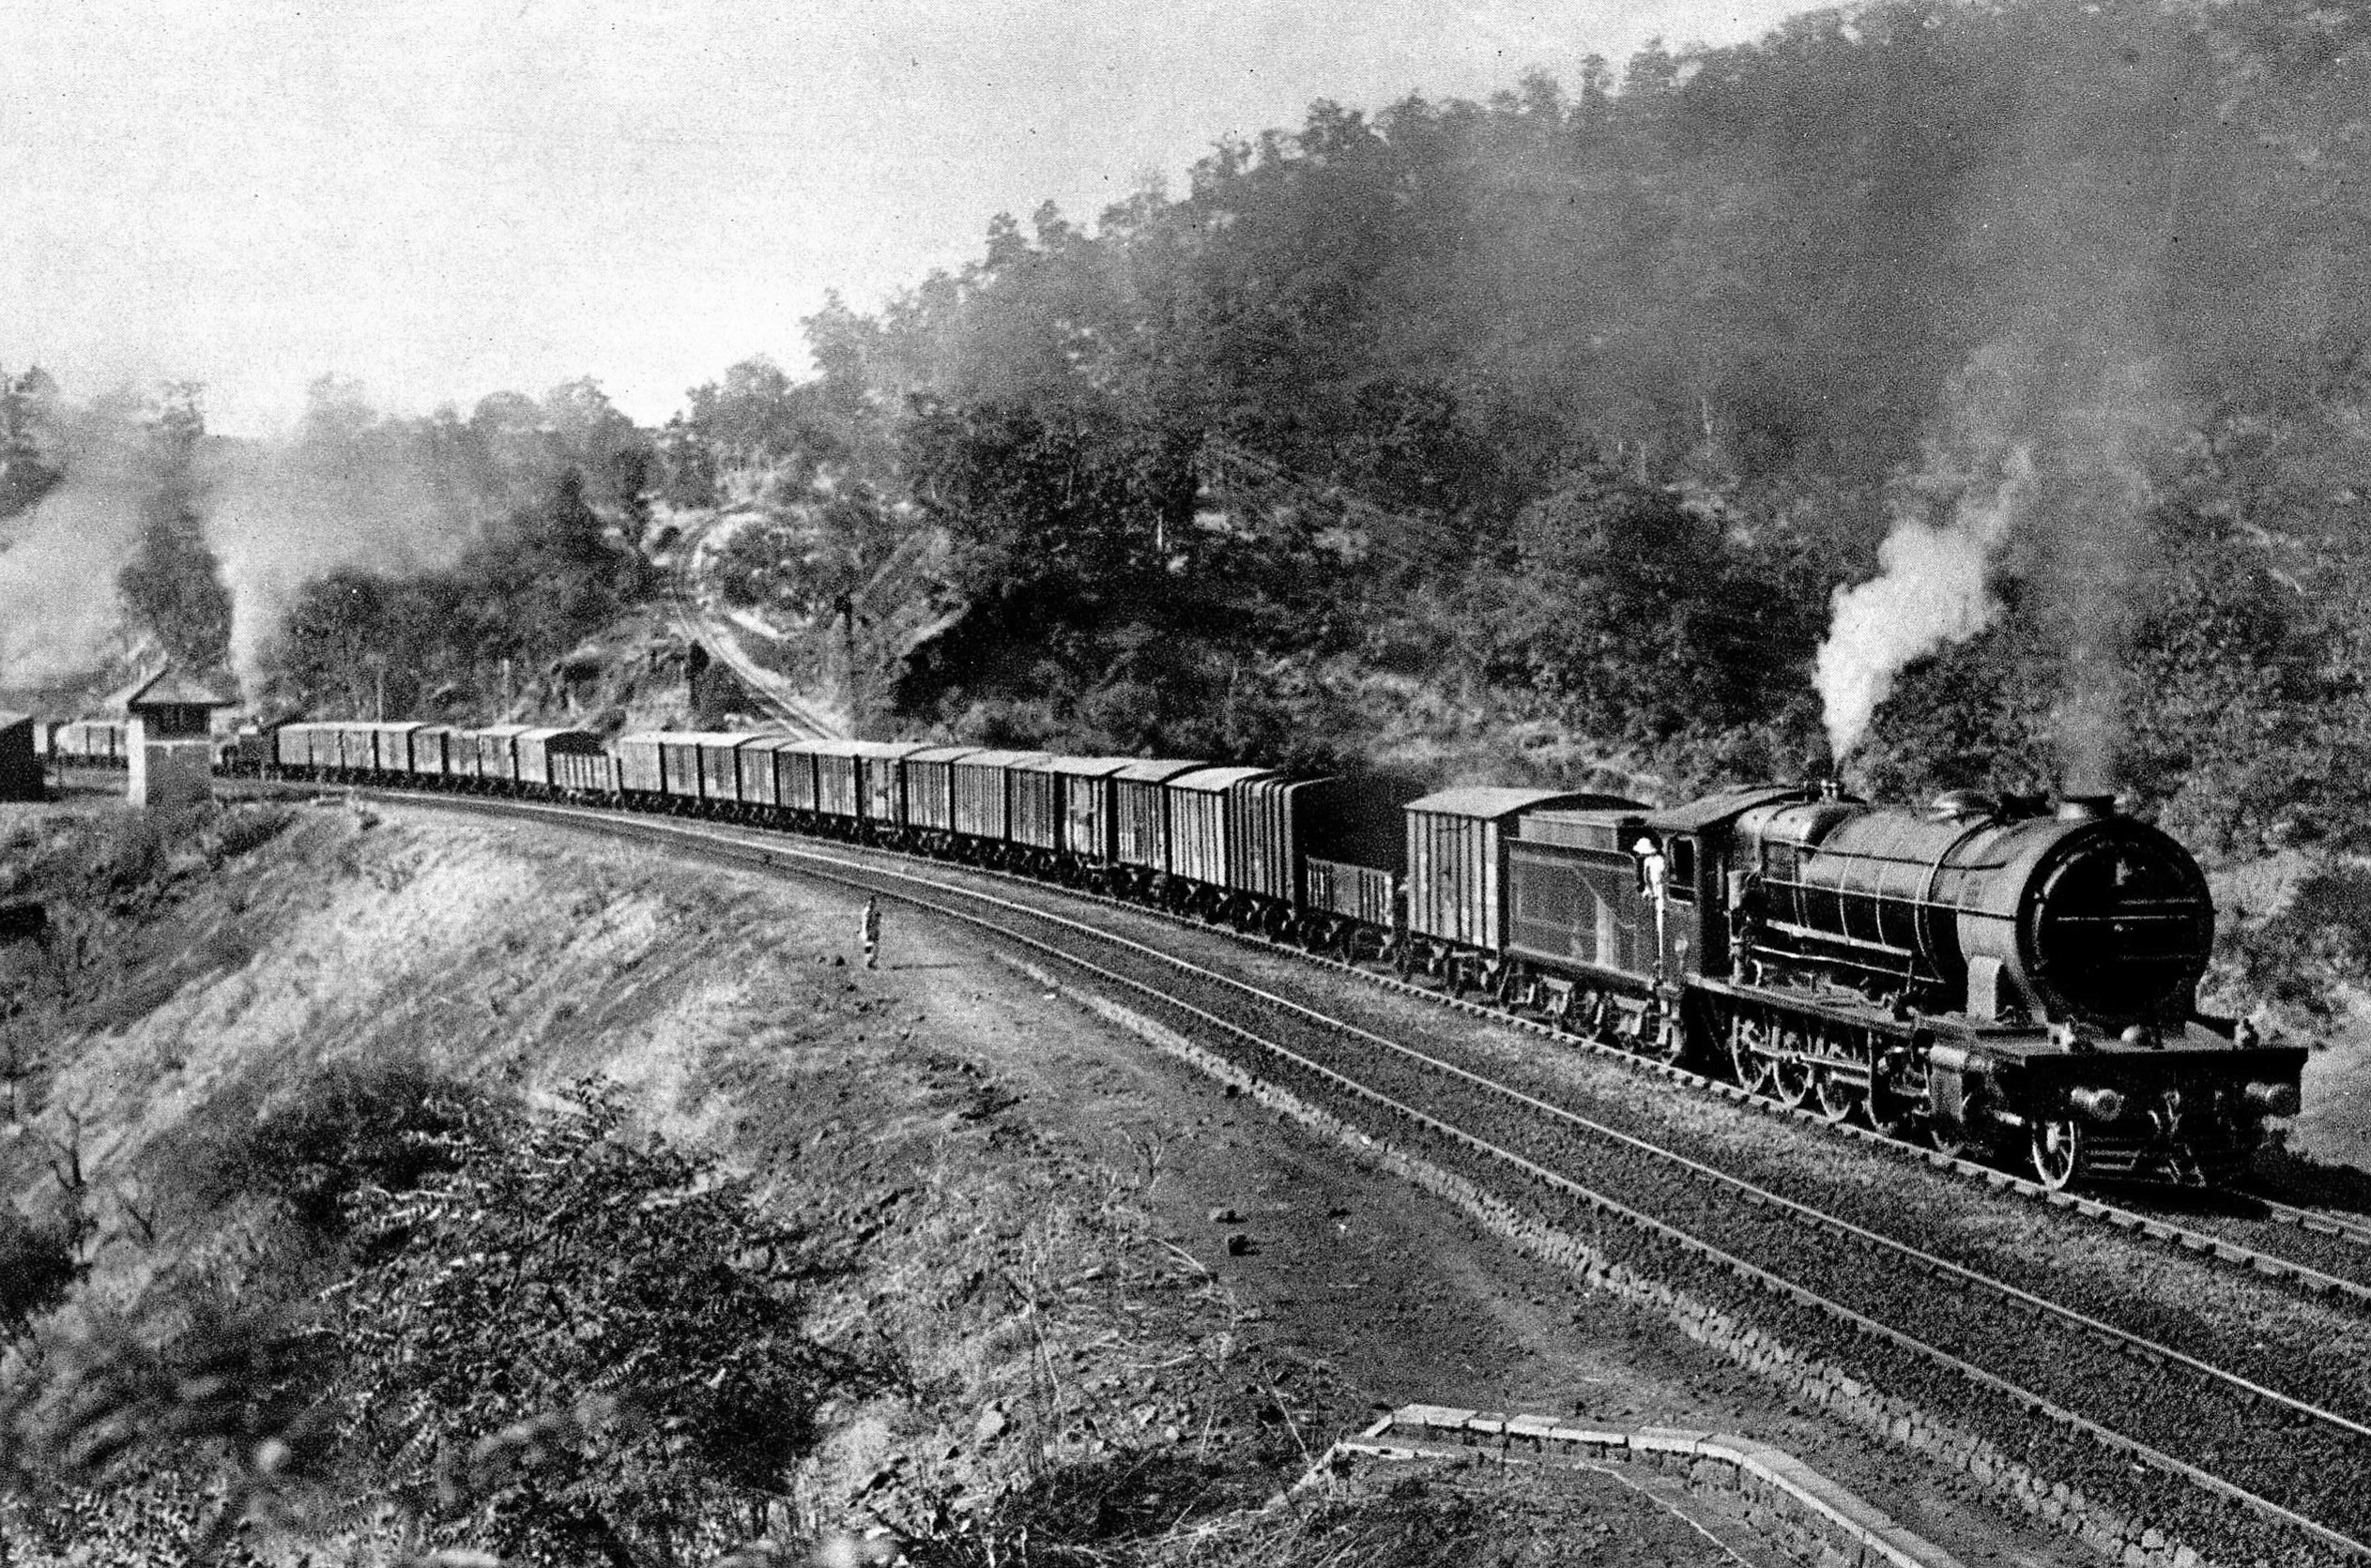 India's First Train Visited Places When in Mumbai